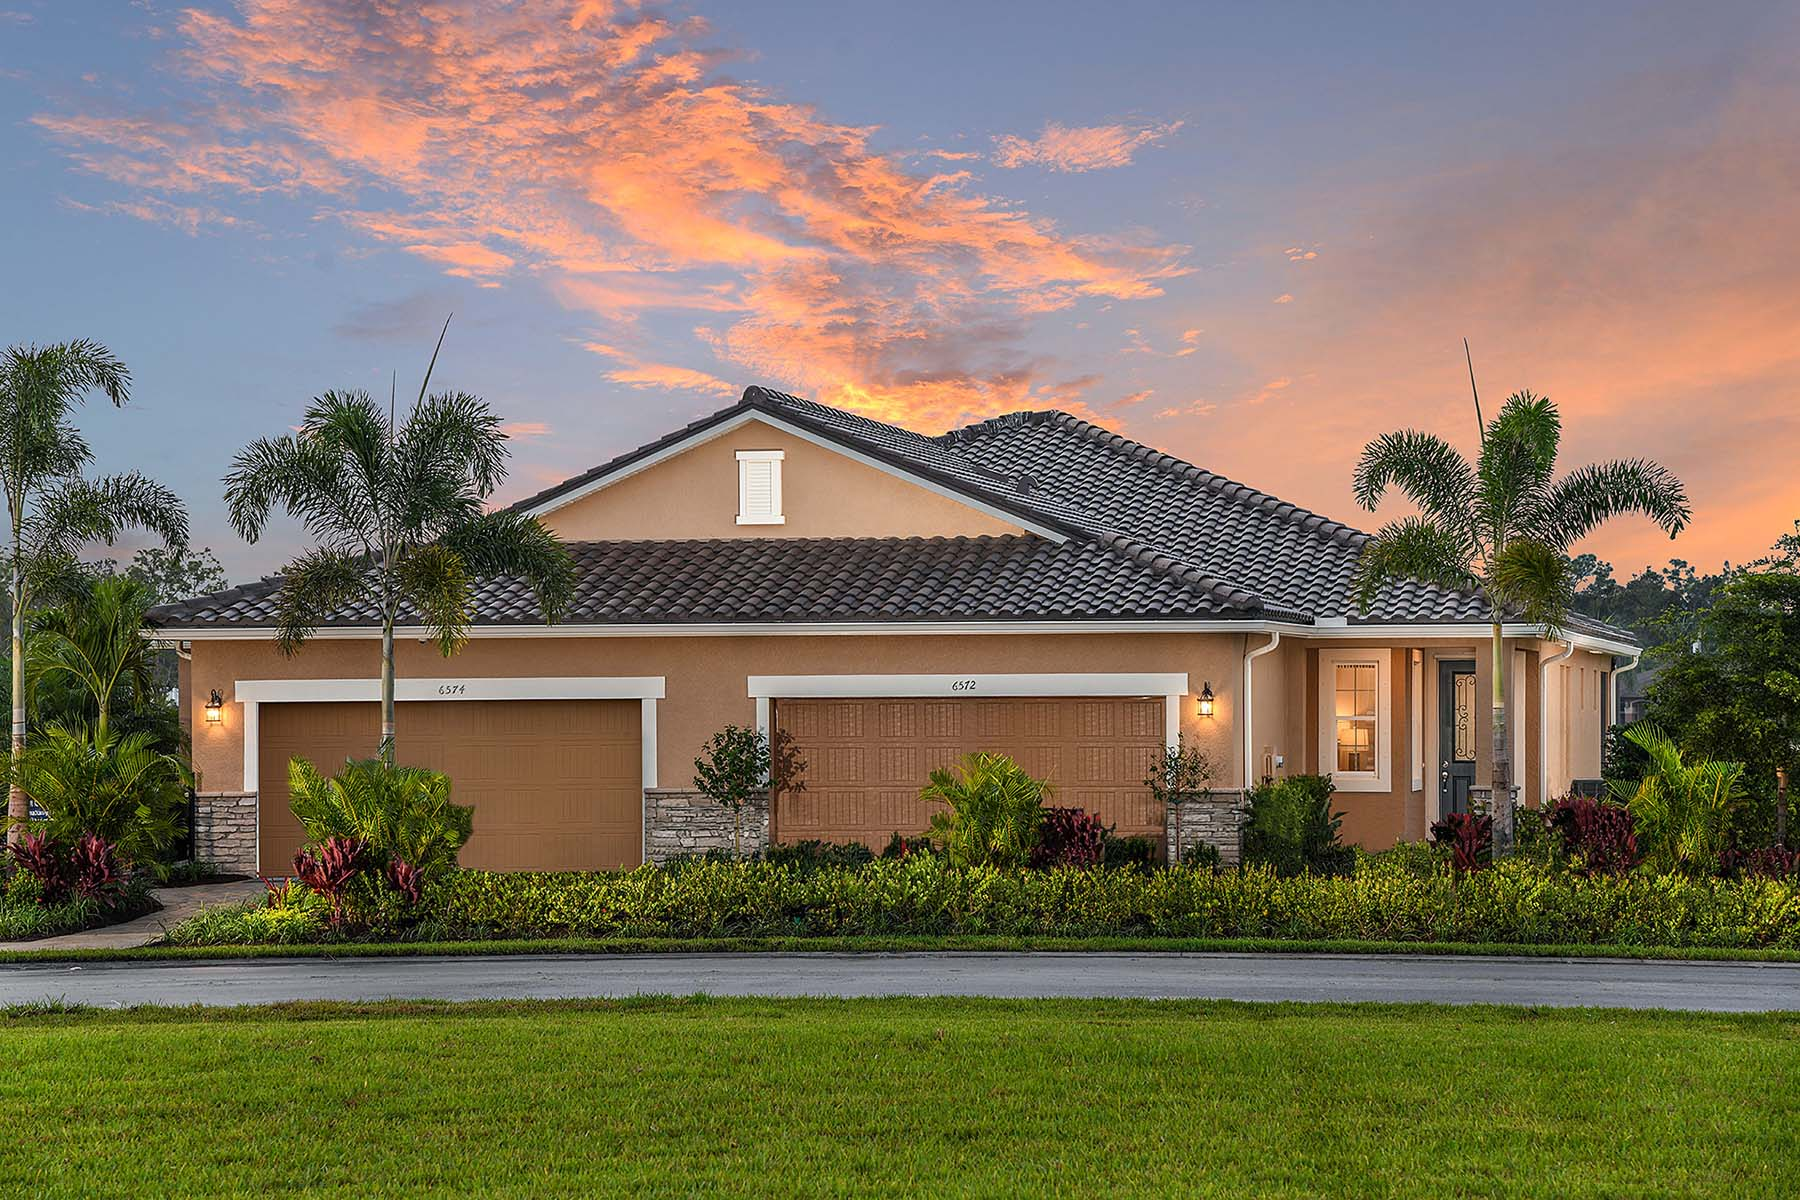 Oceana Plan Elevation Front at Bonavie Cove in Fort Myers Florida by Mattamy Homes